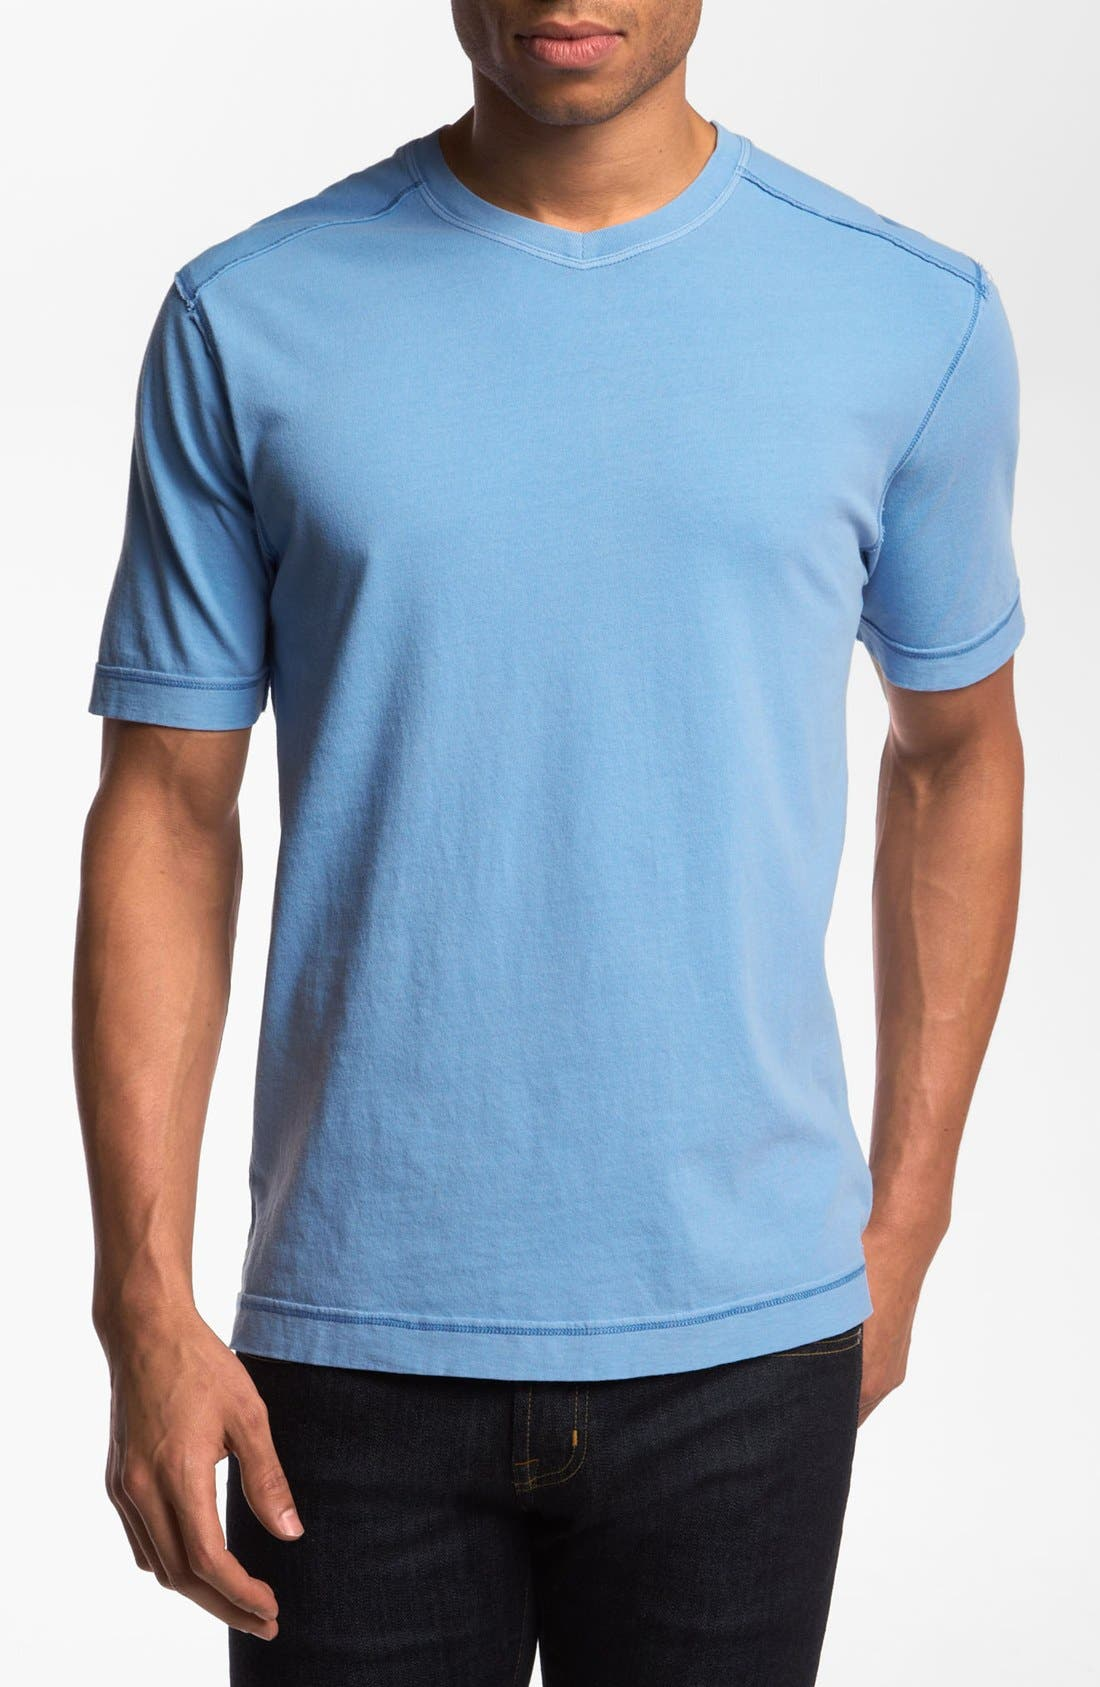 Alternate Image 1 Selected - Tommy Bahama Denim 'Cohen' T-Shirt (Big & Tall)